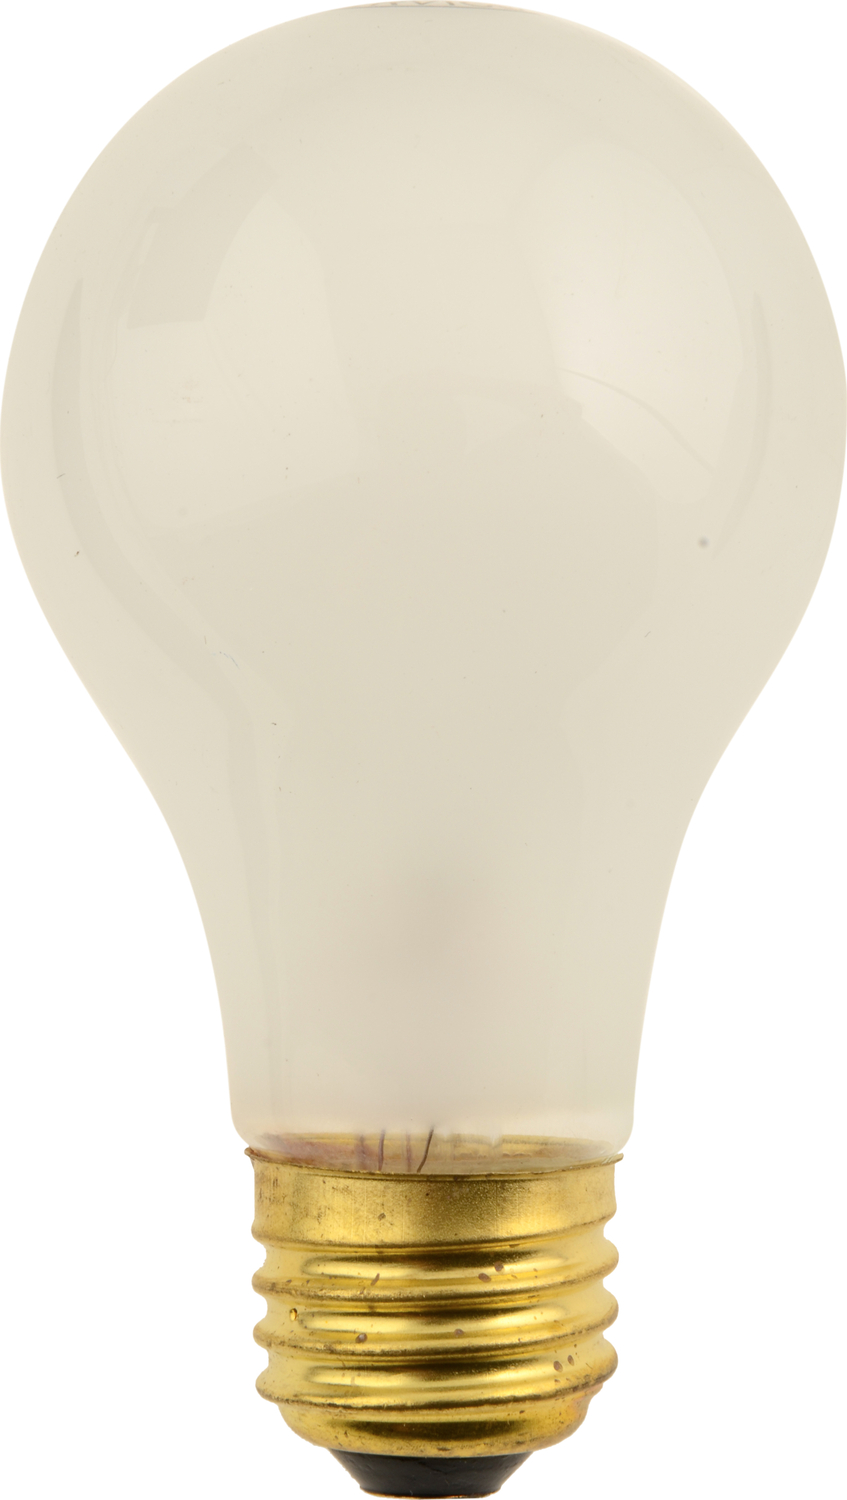 Multi Purpose Light Bulb